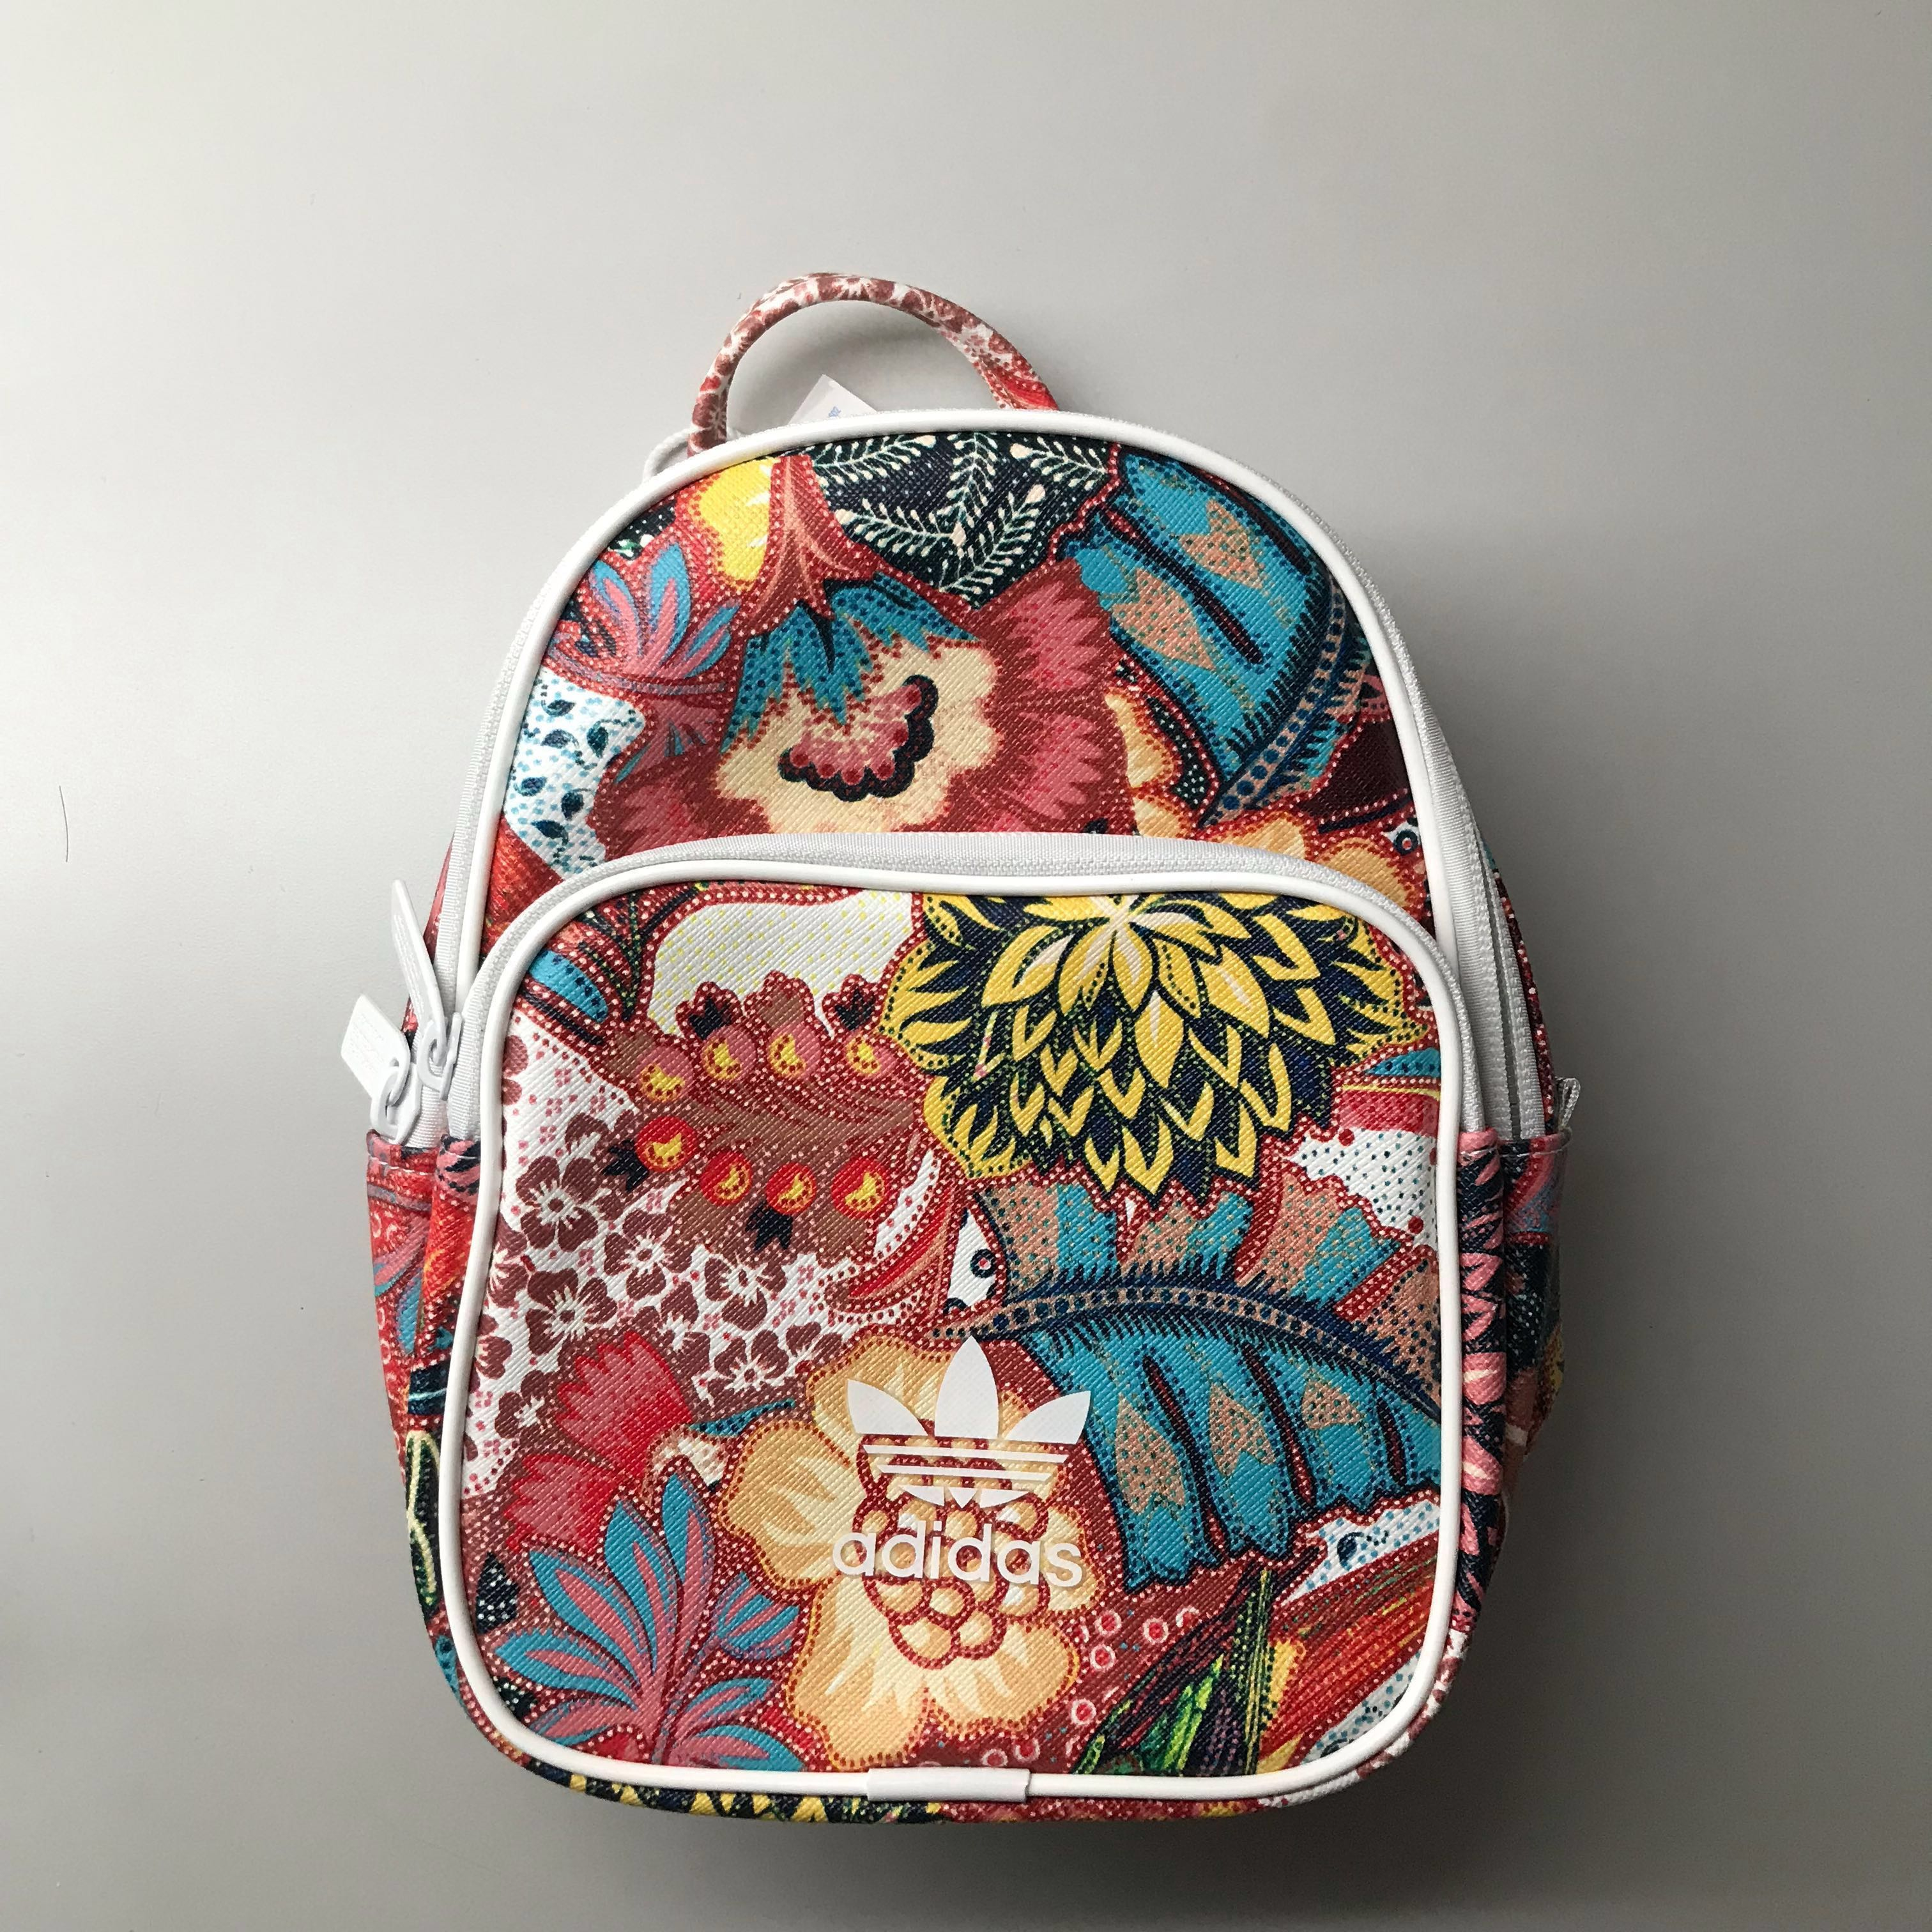 Adidas Originals Mini Farm Print Backpack In Bright Floral, Women s  Fashion, Bags   Wallets, Backpacks on Carousell 6c48752344